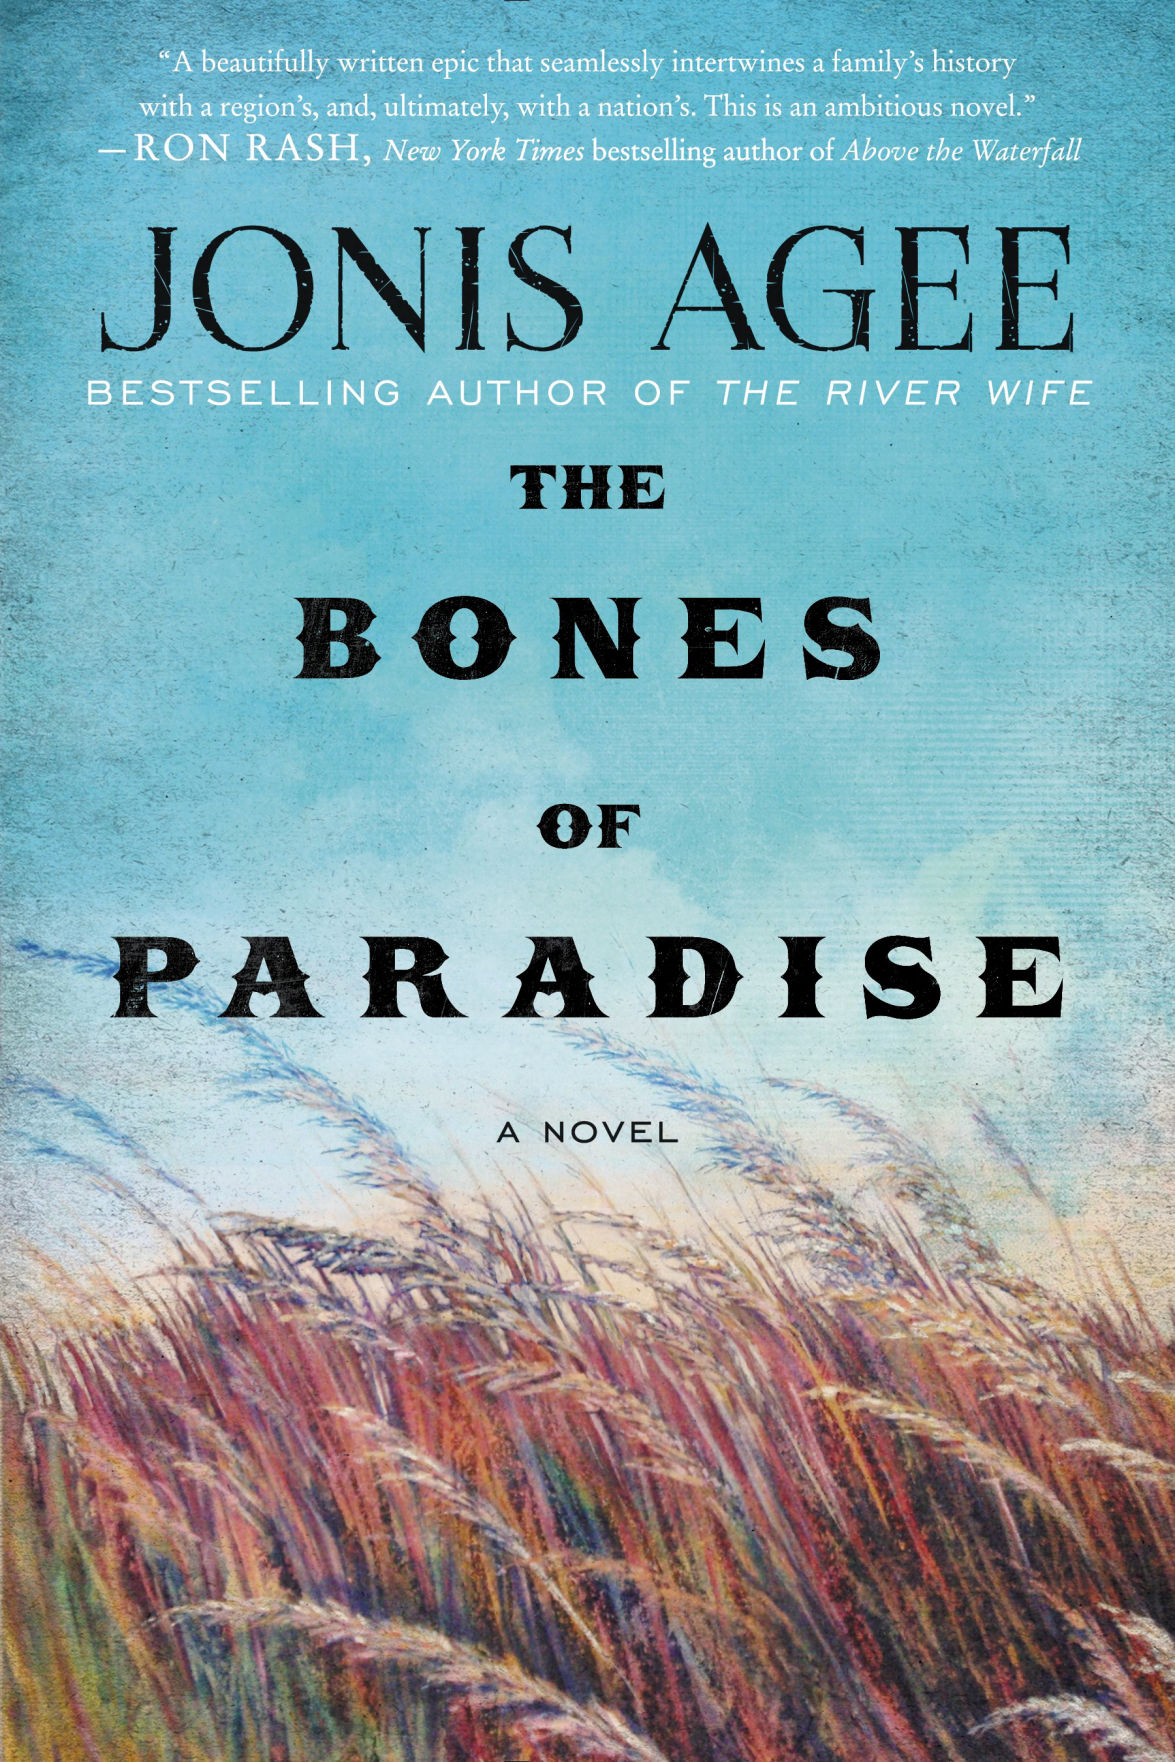 The Bones of Paradise: A Novel